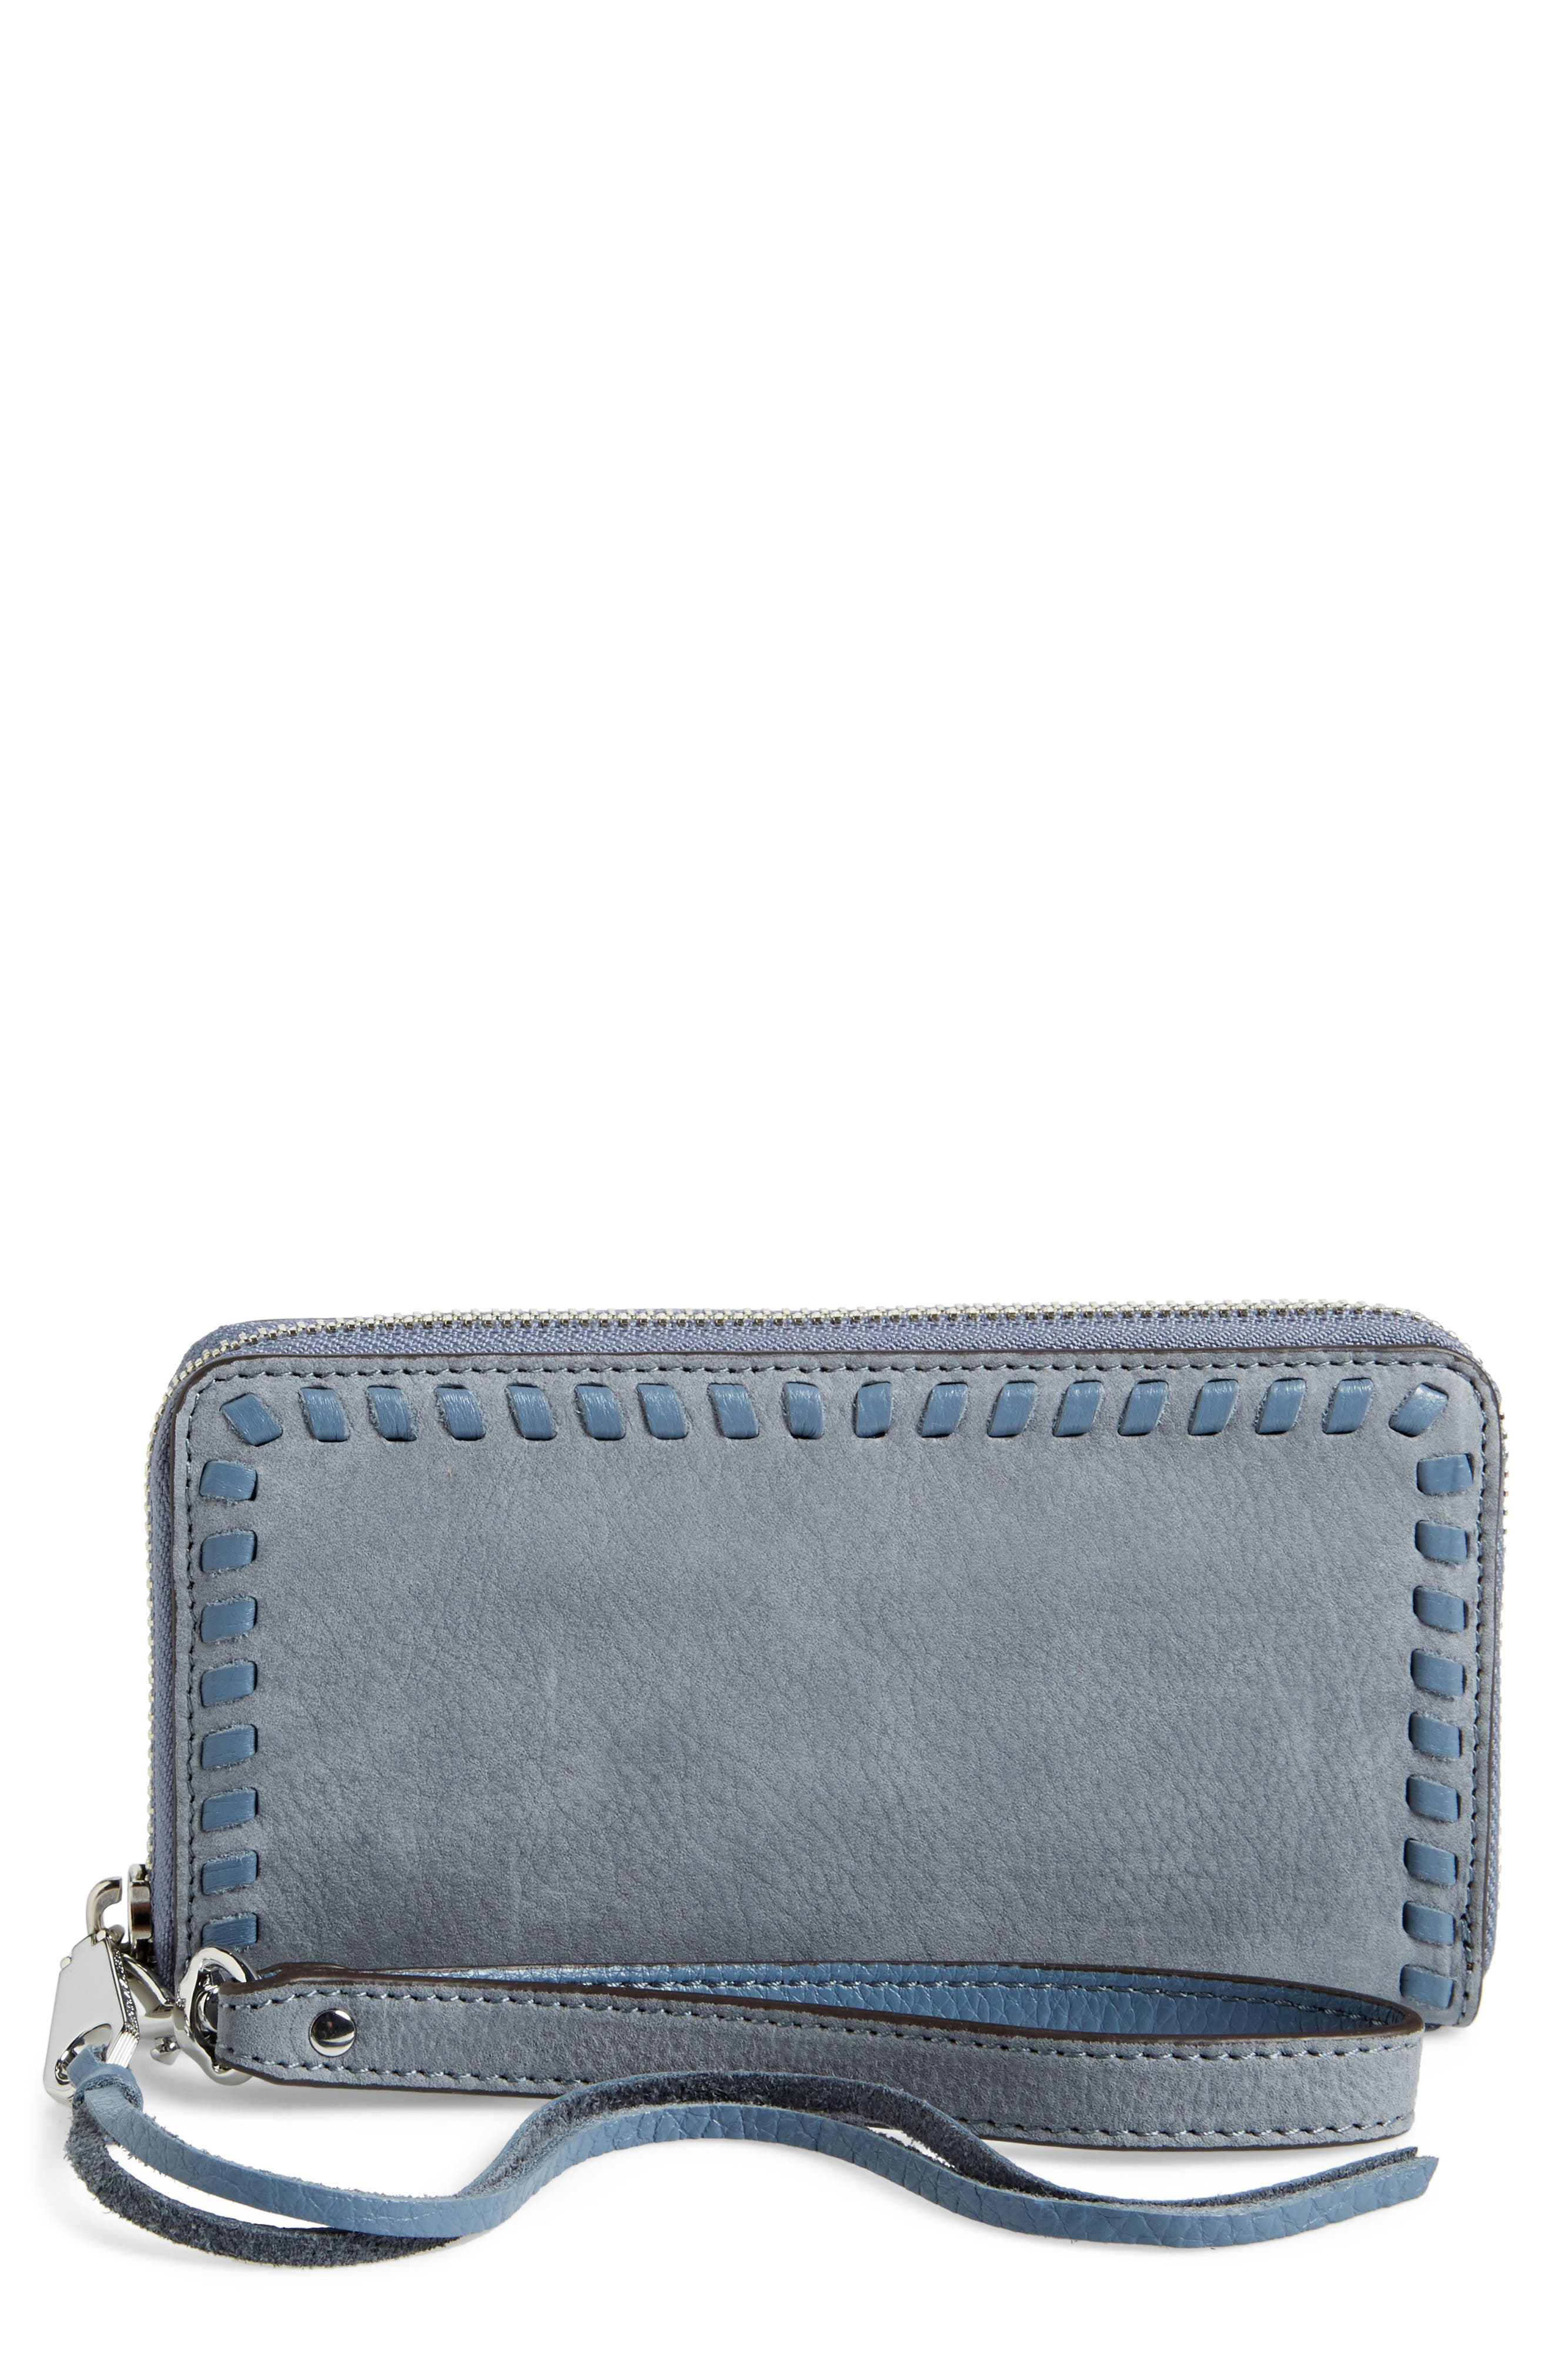 Vanity Nubuck Leather Phone Wallet,                         Main,                         color, Dusty Blue/ Silver Hardware